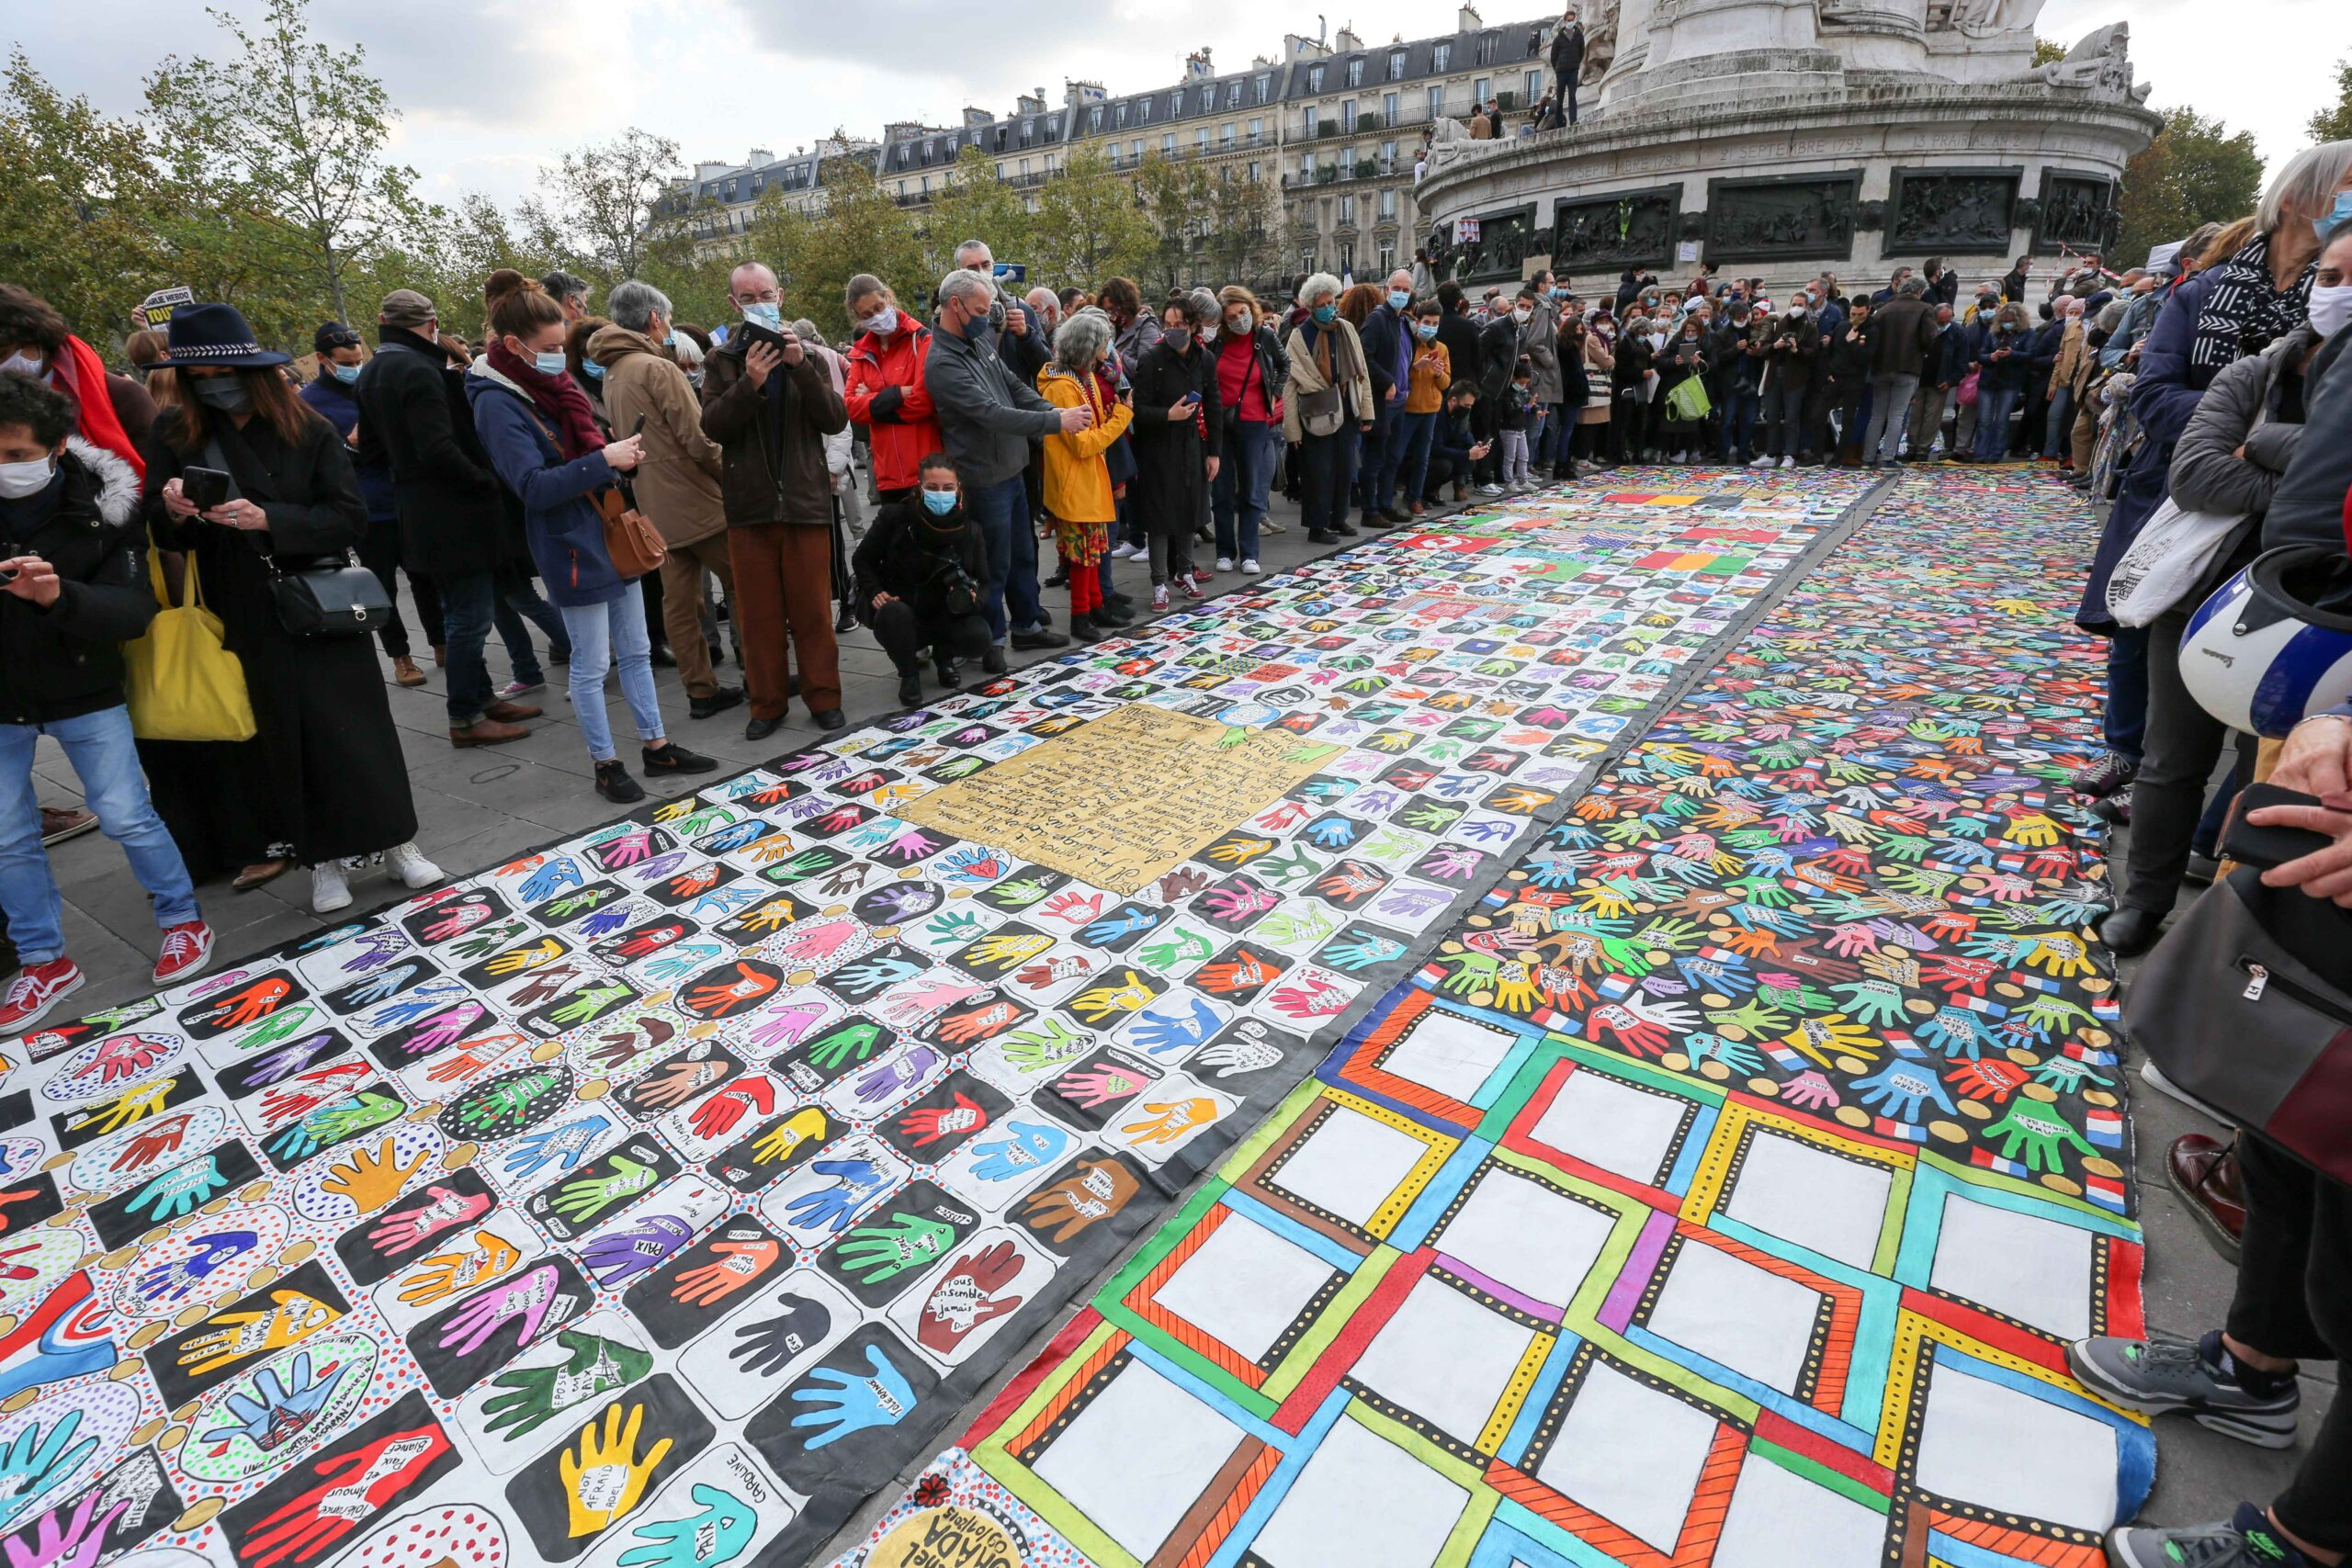 People gather on Place de la Republique in Paris on October 18, 2020, in homage to history teacher Samuel Paty two days after he was beheaded by an attacker who was shot dead by policemen. Thousands of people rally in Paris and other French cities on Octob